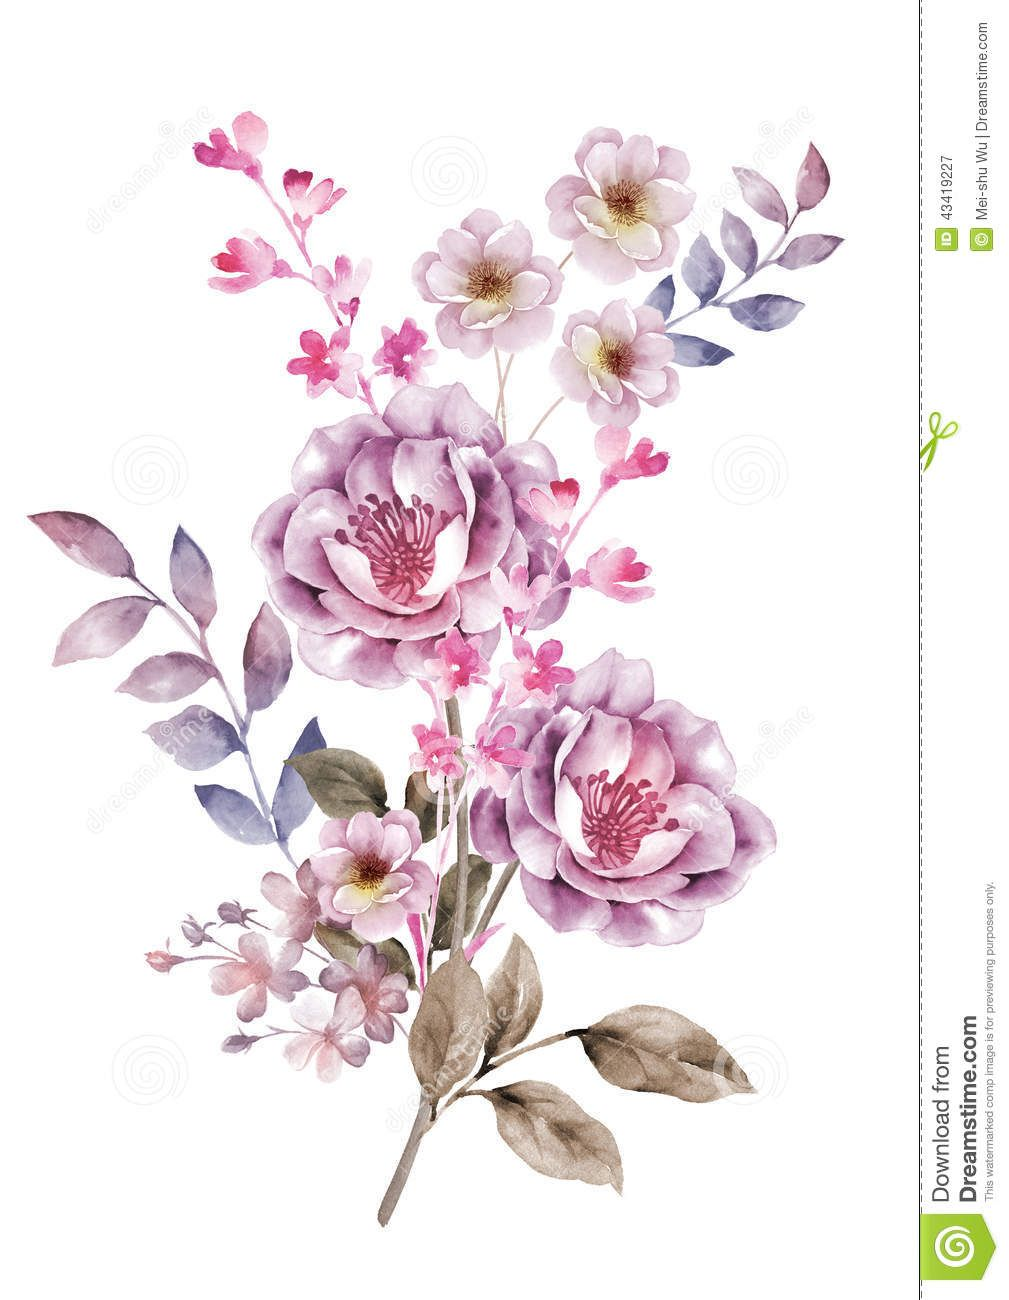 Watercolor illustration flower in simple background - High resolution watercolor flowers ...